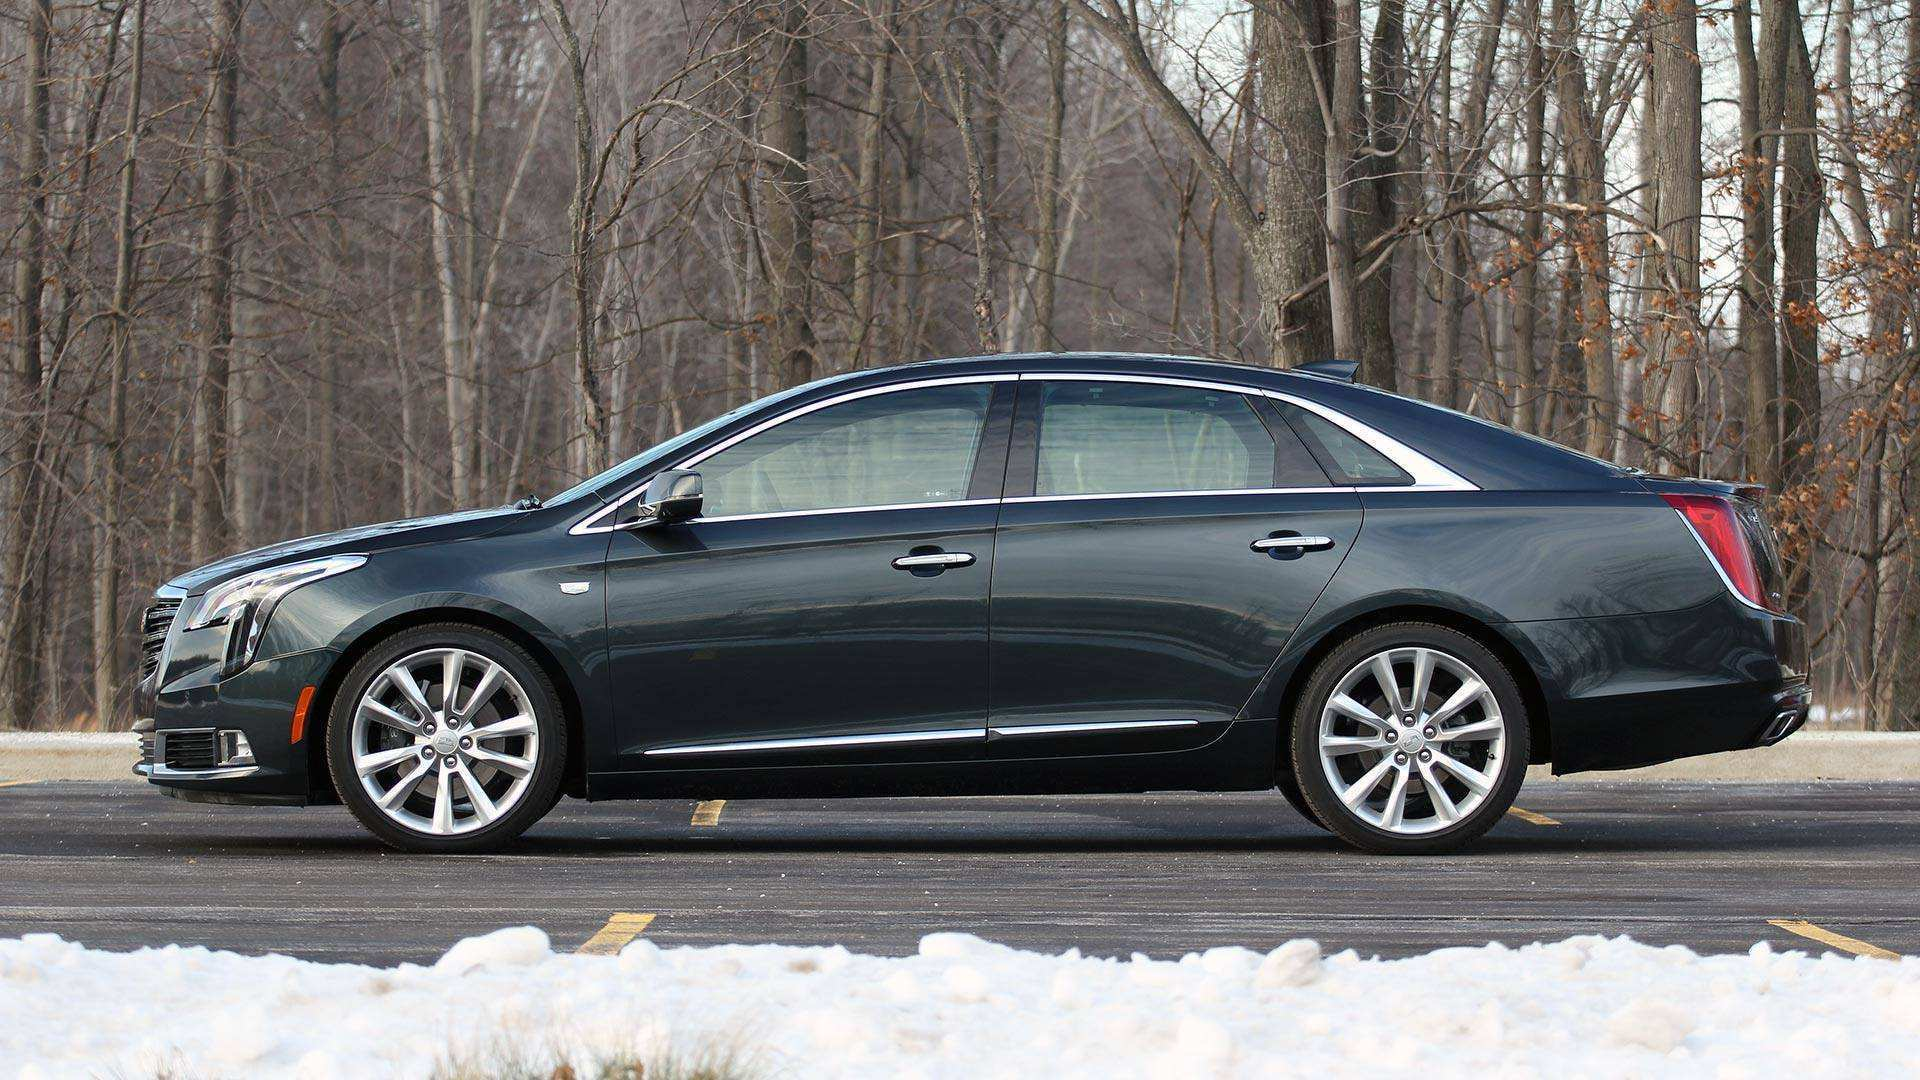 84 New 2020 Cadillac Xts Premium Rumors